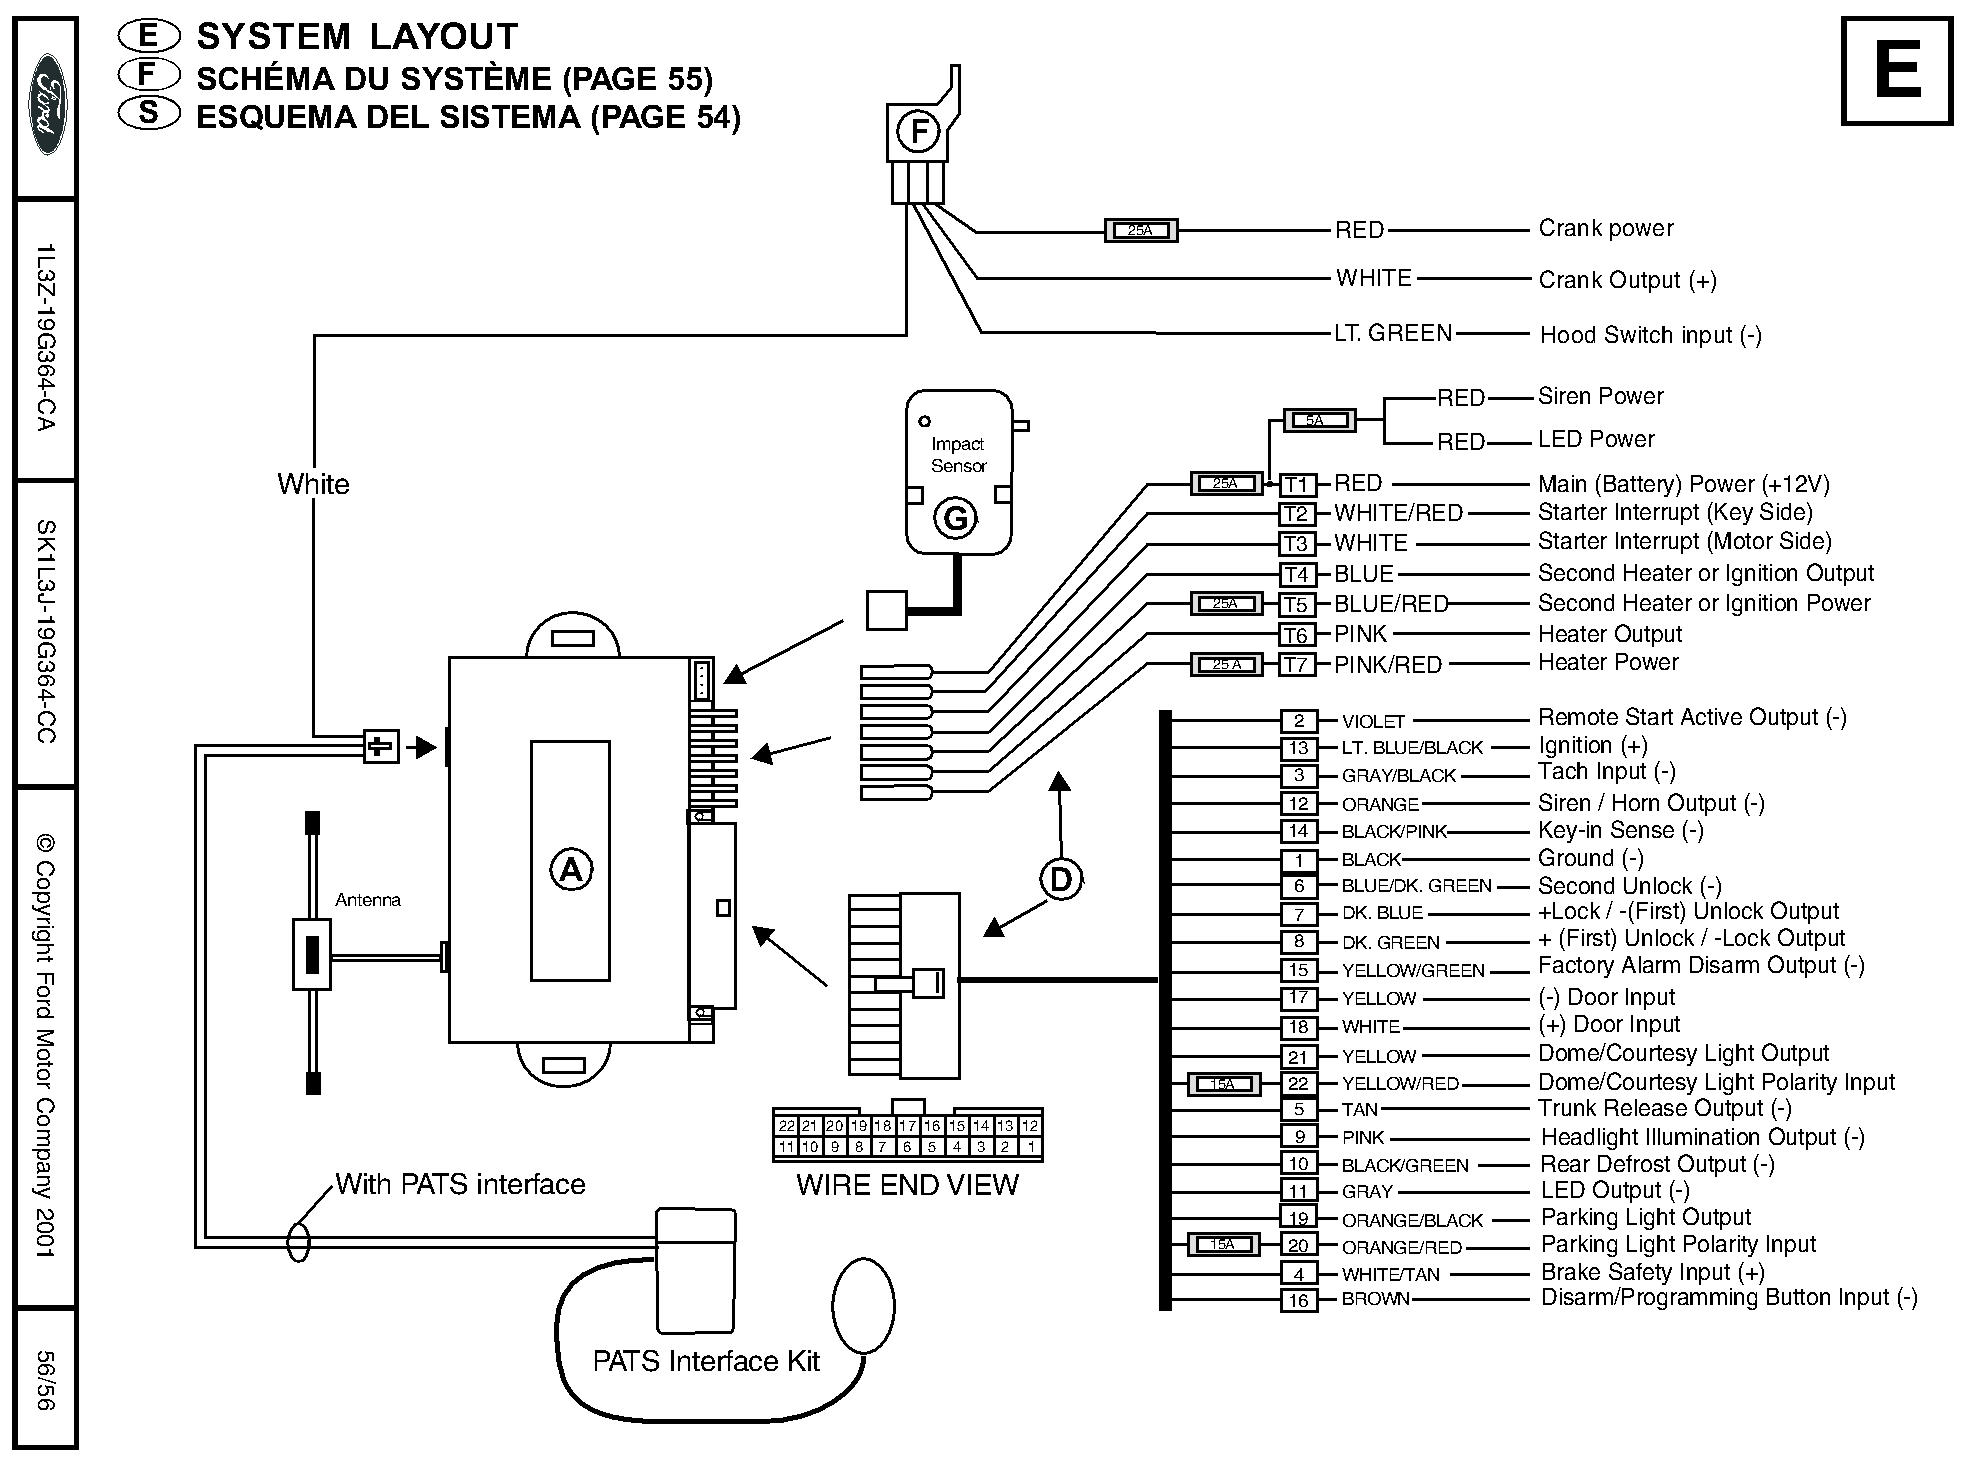 fordgoldstarter wiring diagram remote start readingrat net cyclone motorcycle alarm wiring diagram at suagrazia.org